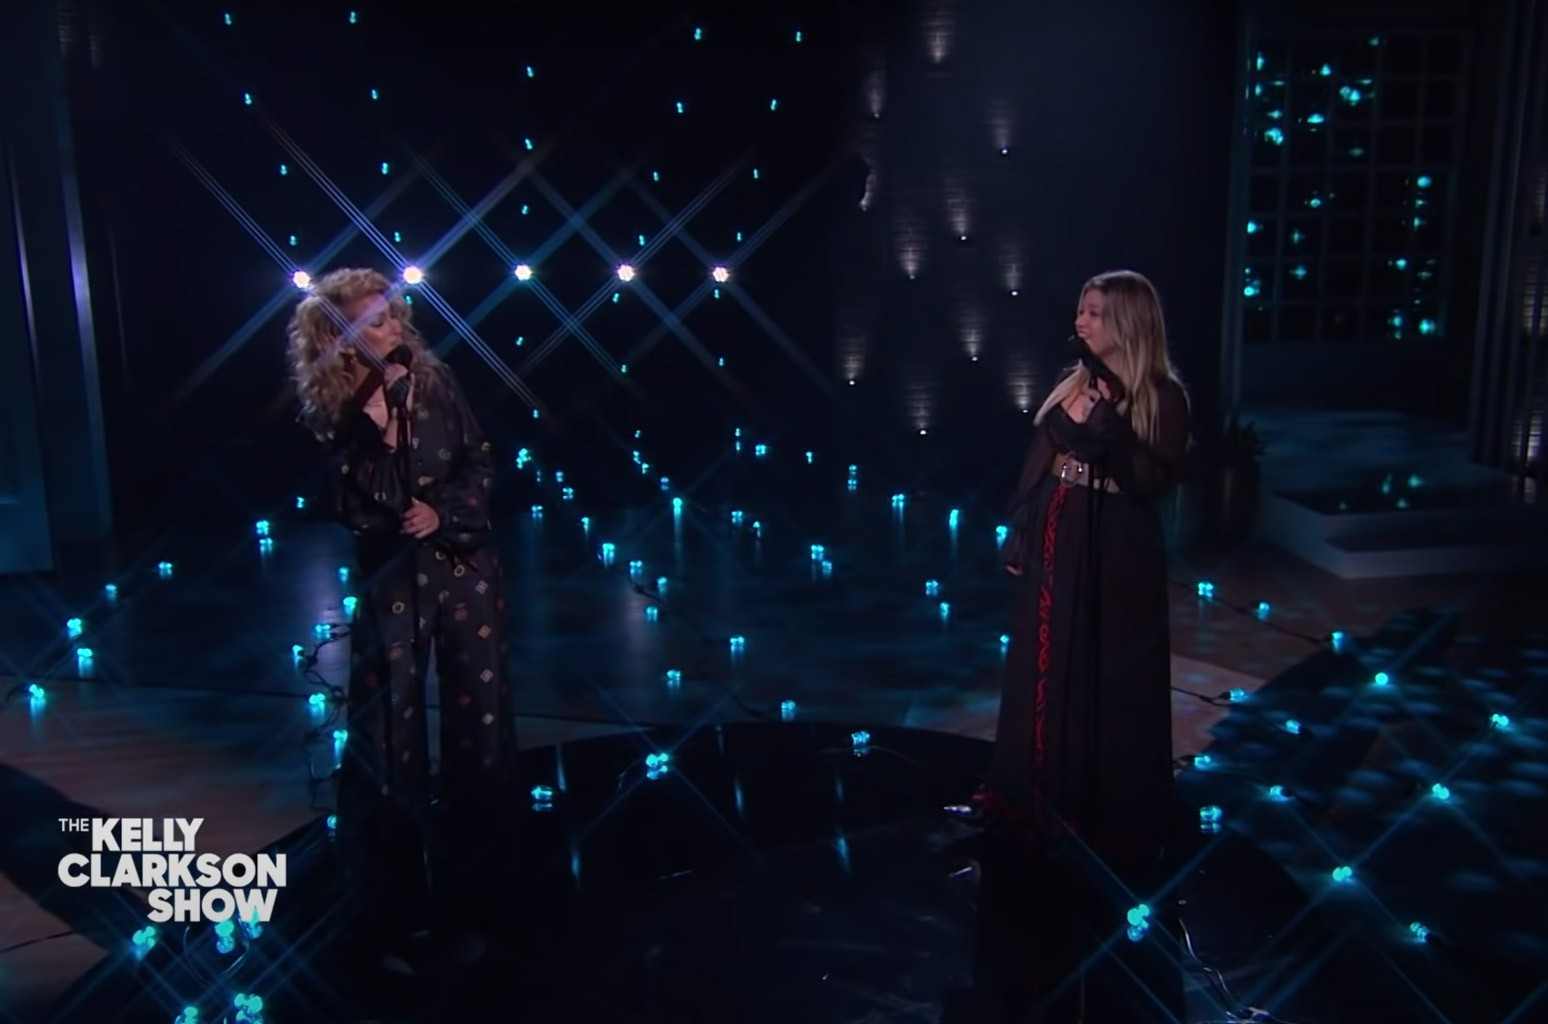 Tori Kelly and Kelly Clarkson